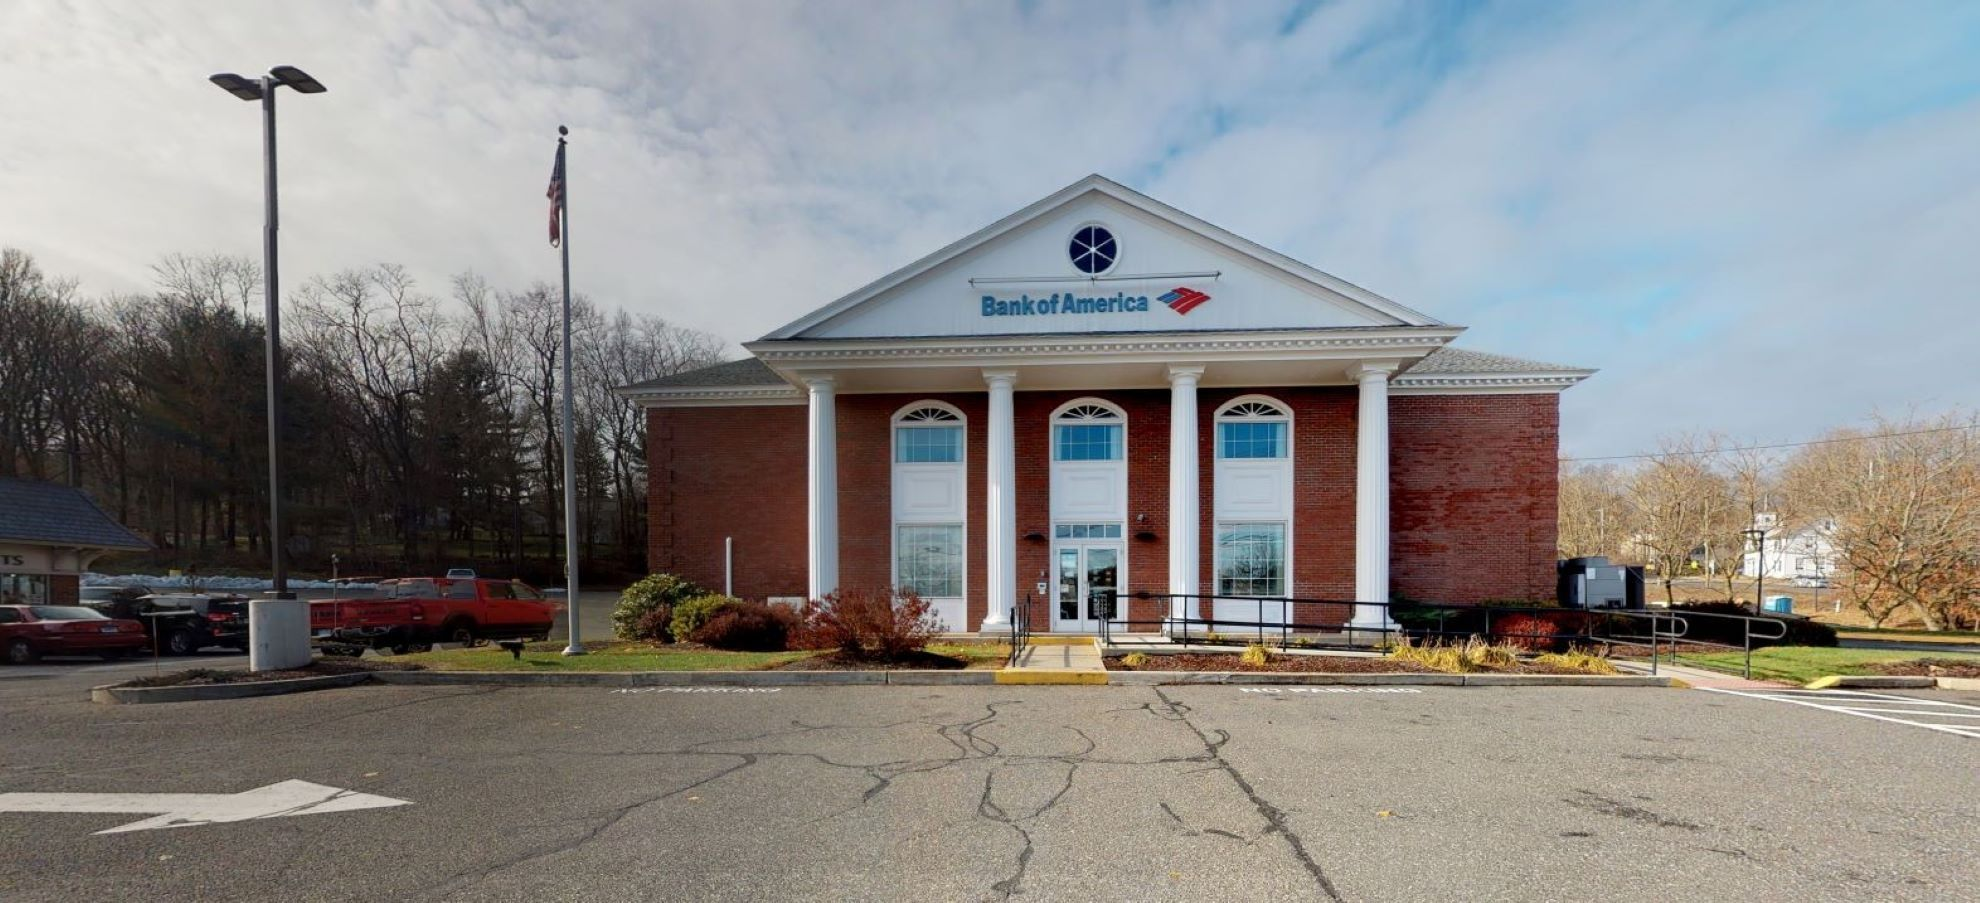 Bank of America financial center with walk-up ATM   955 White Plains Rd, Trumbull, CT 06611